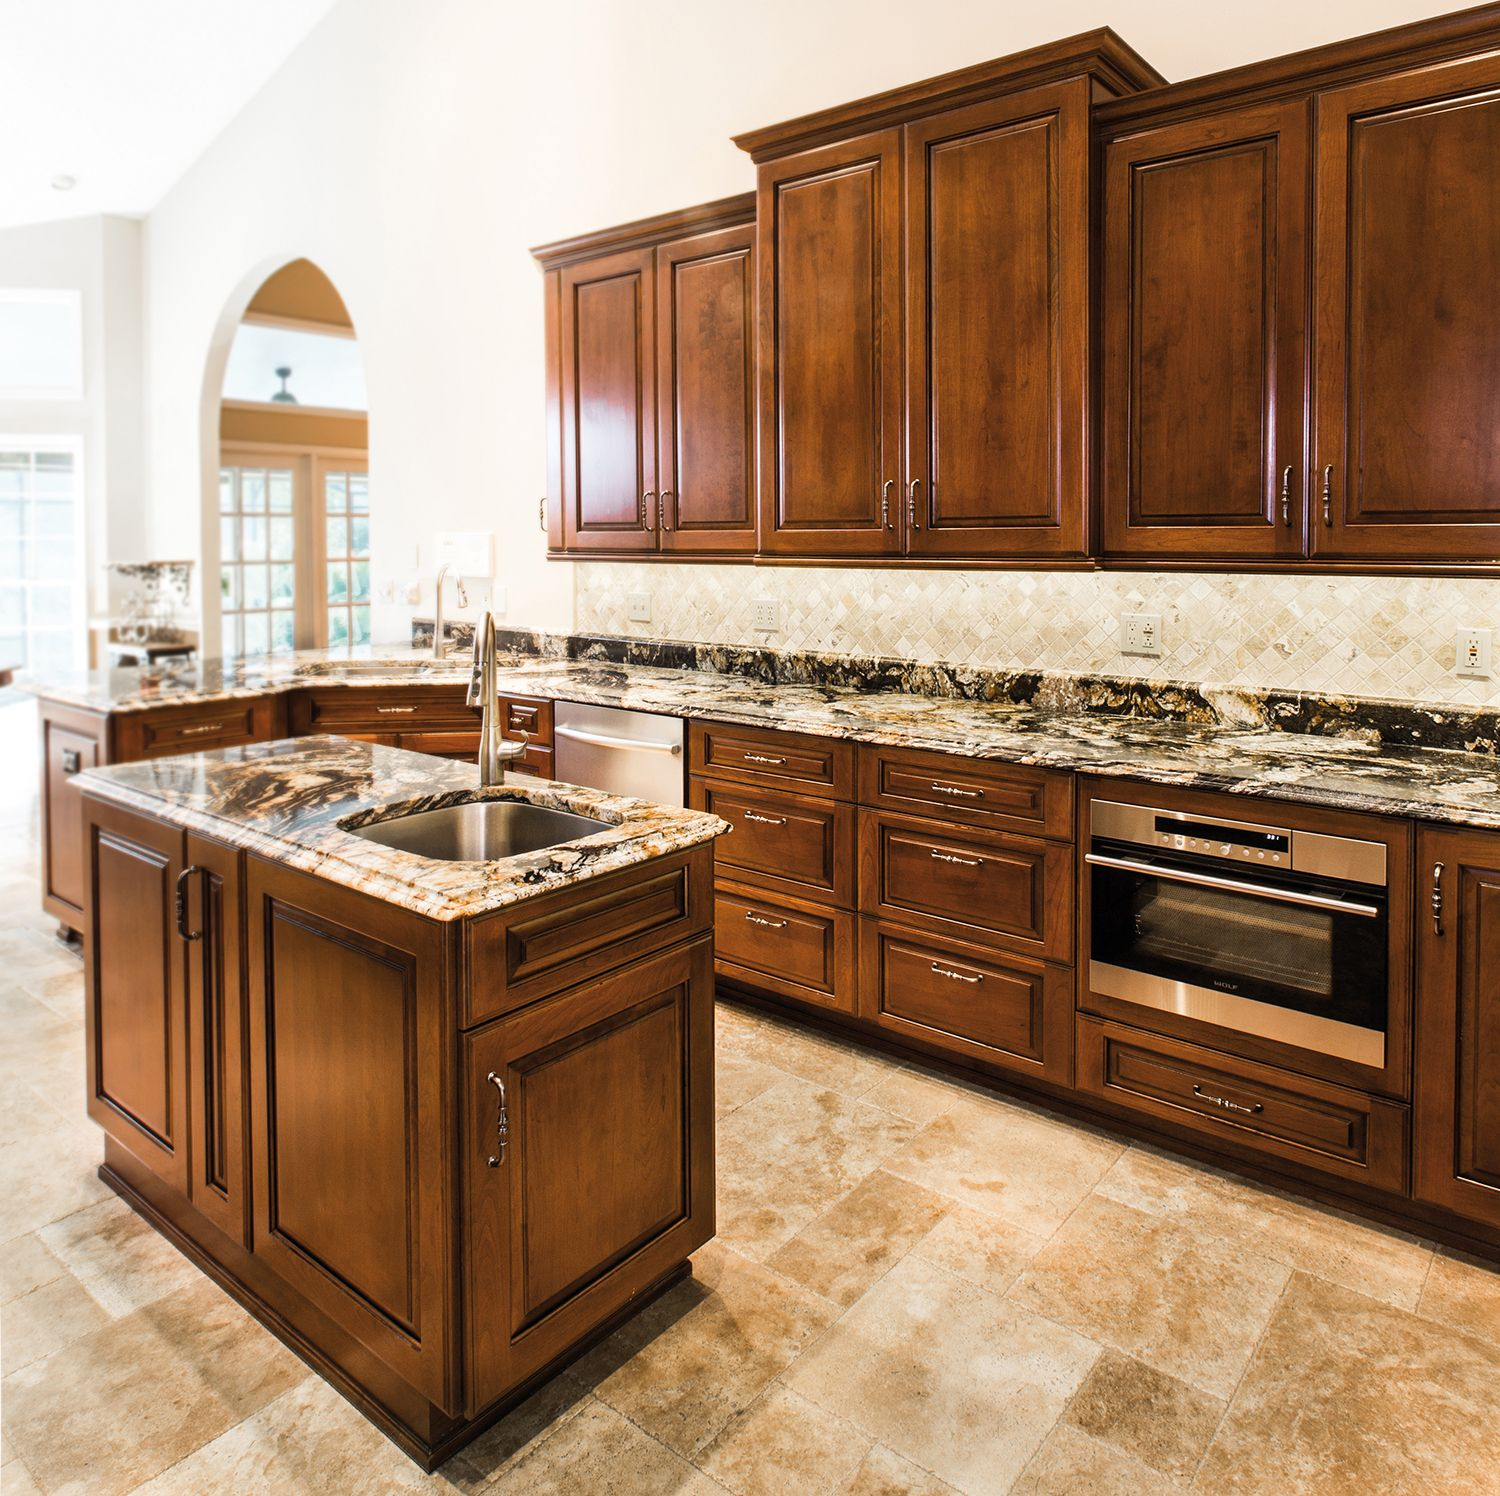 Zeljko designed this traditional kitchen using Cherry wood in a